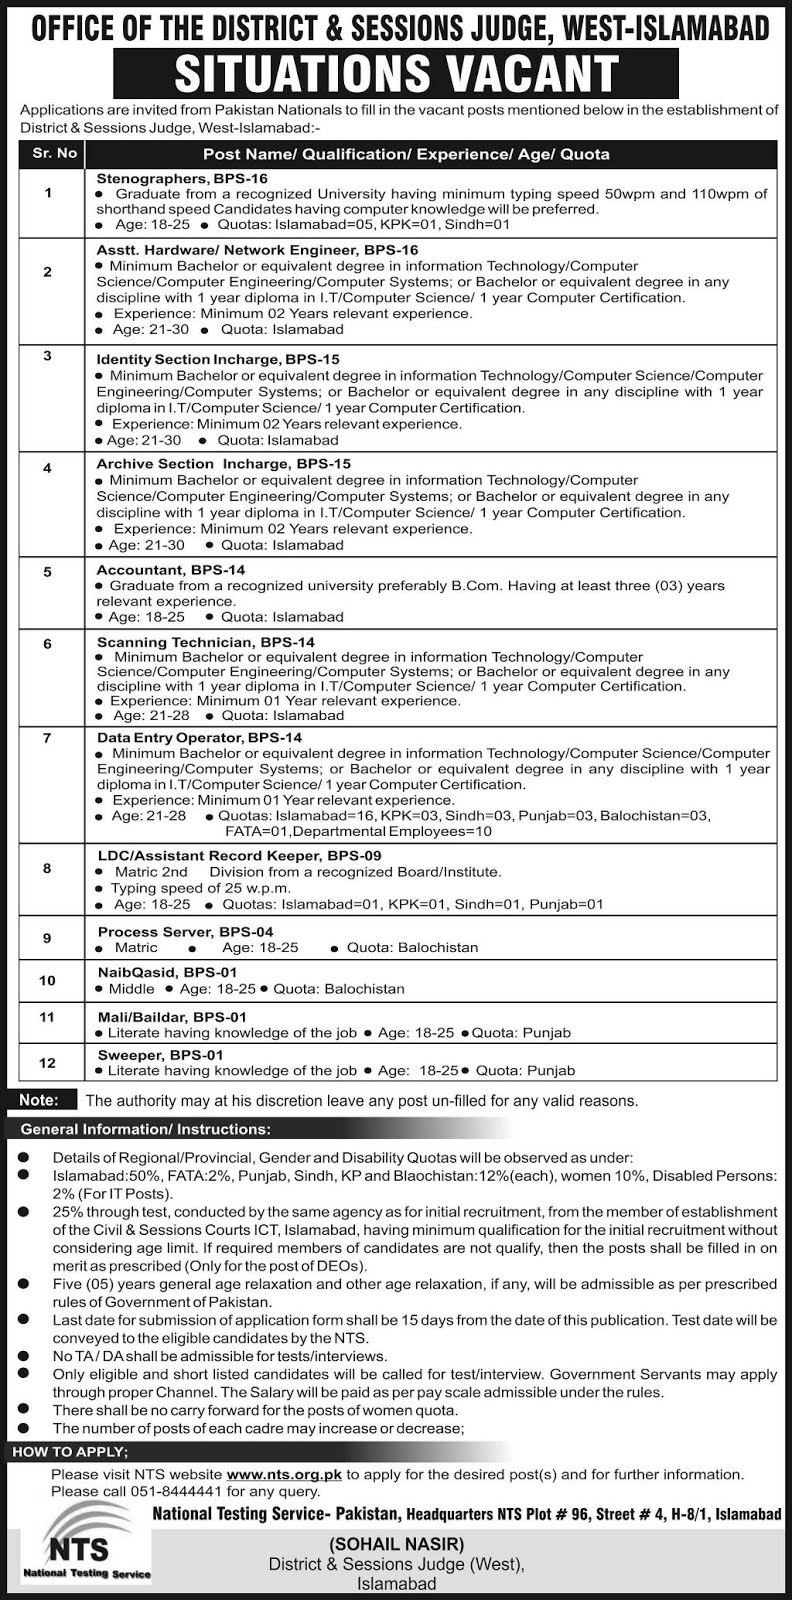 district and session court,jobs in pakistan,jobs in district and session court 2018,latest jobs in district and session court attock,jobs announced in district and session court,govt jobs announced in district and session court,district and session court jobs in punjab 2018,new jobs district and session court attock,district and session court attock jobs